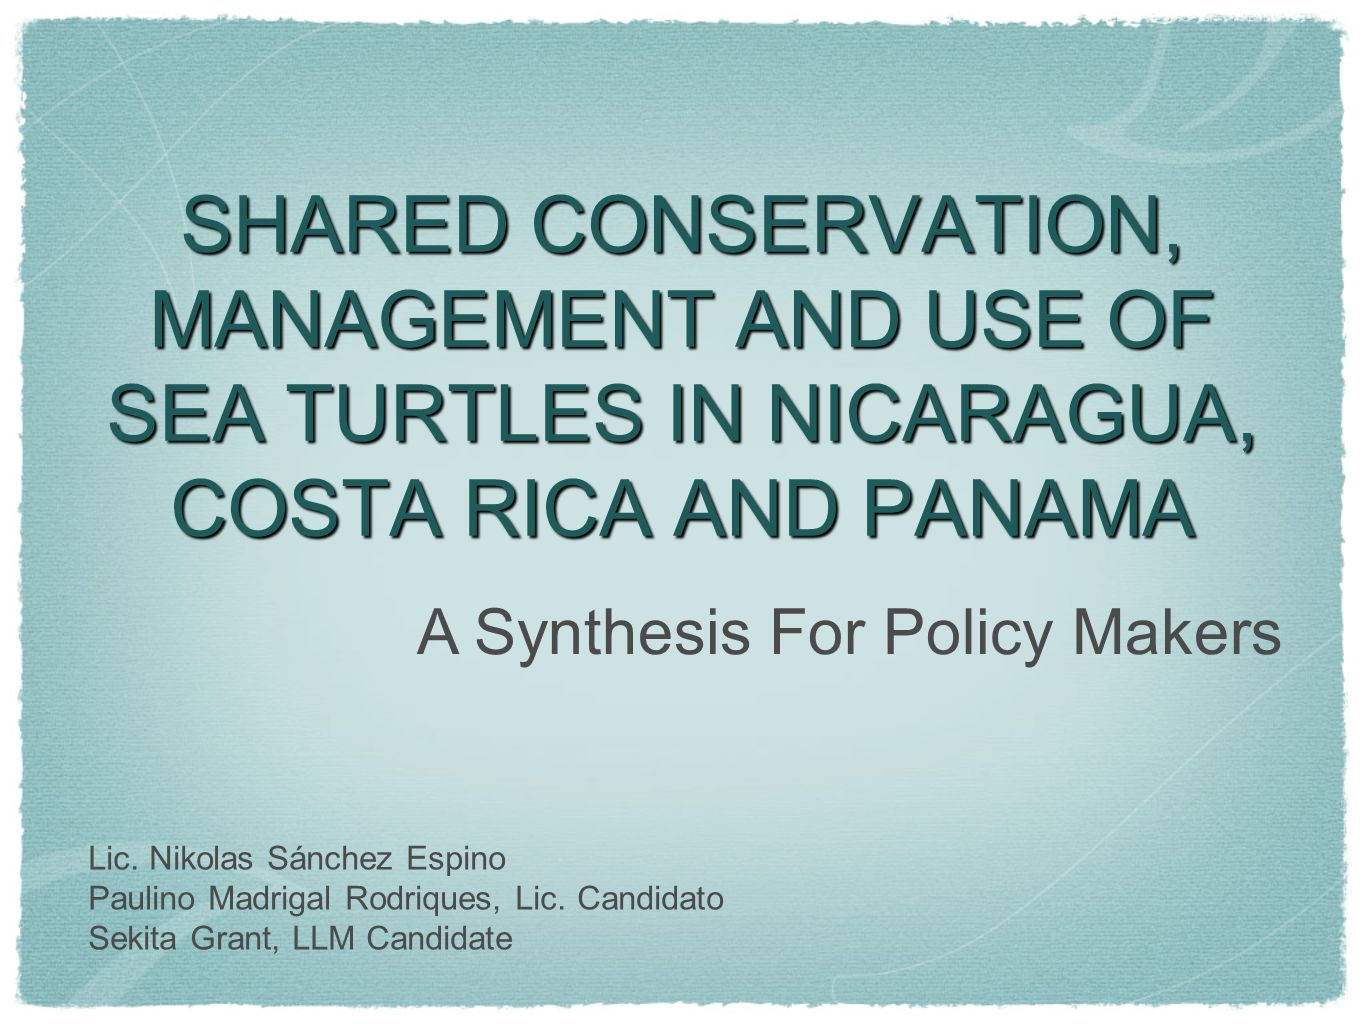 SHARED CONSERVATION, MANAGEMENT AND USE OF SEA TURTLES IN NICARAGUA, COSTA RICA AND PANAMA Lic.